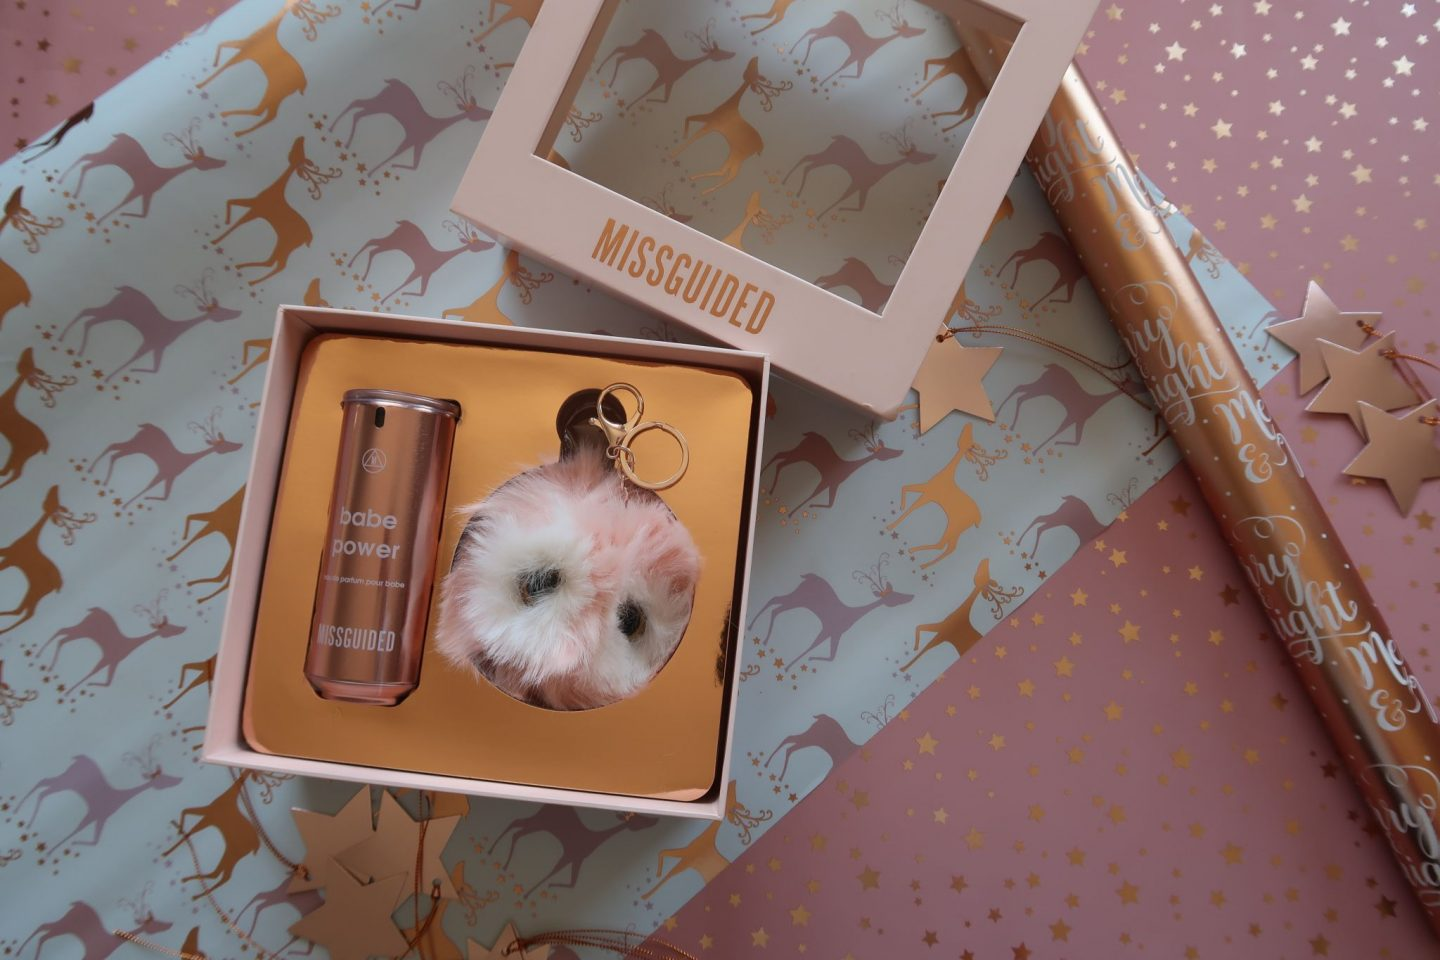 Missguided Babe Power Christmas Gift Set WhatLauraLoves